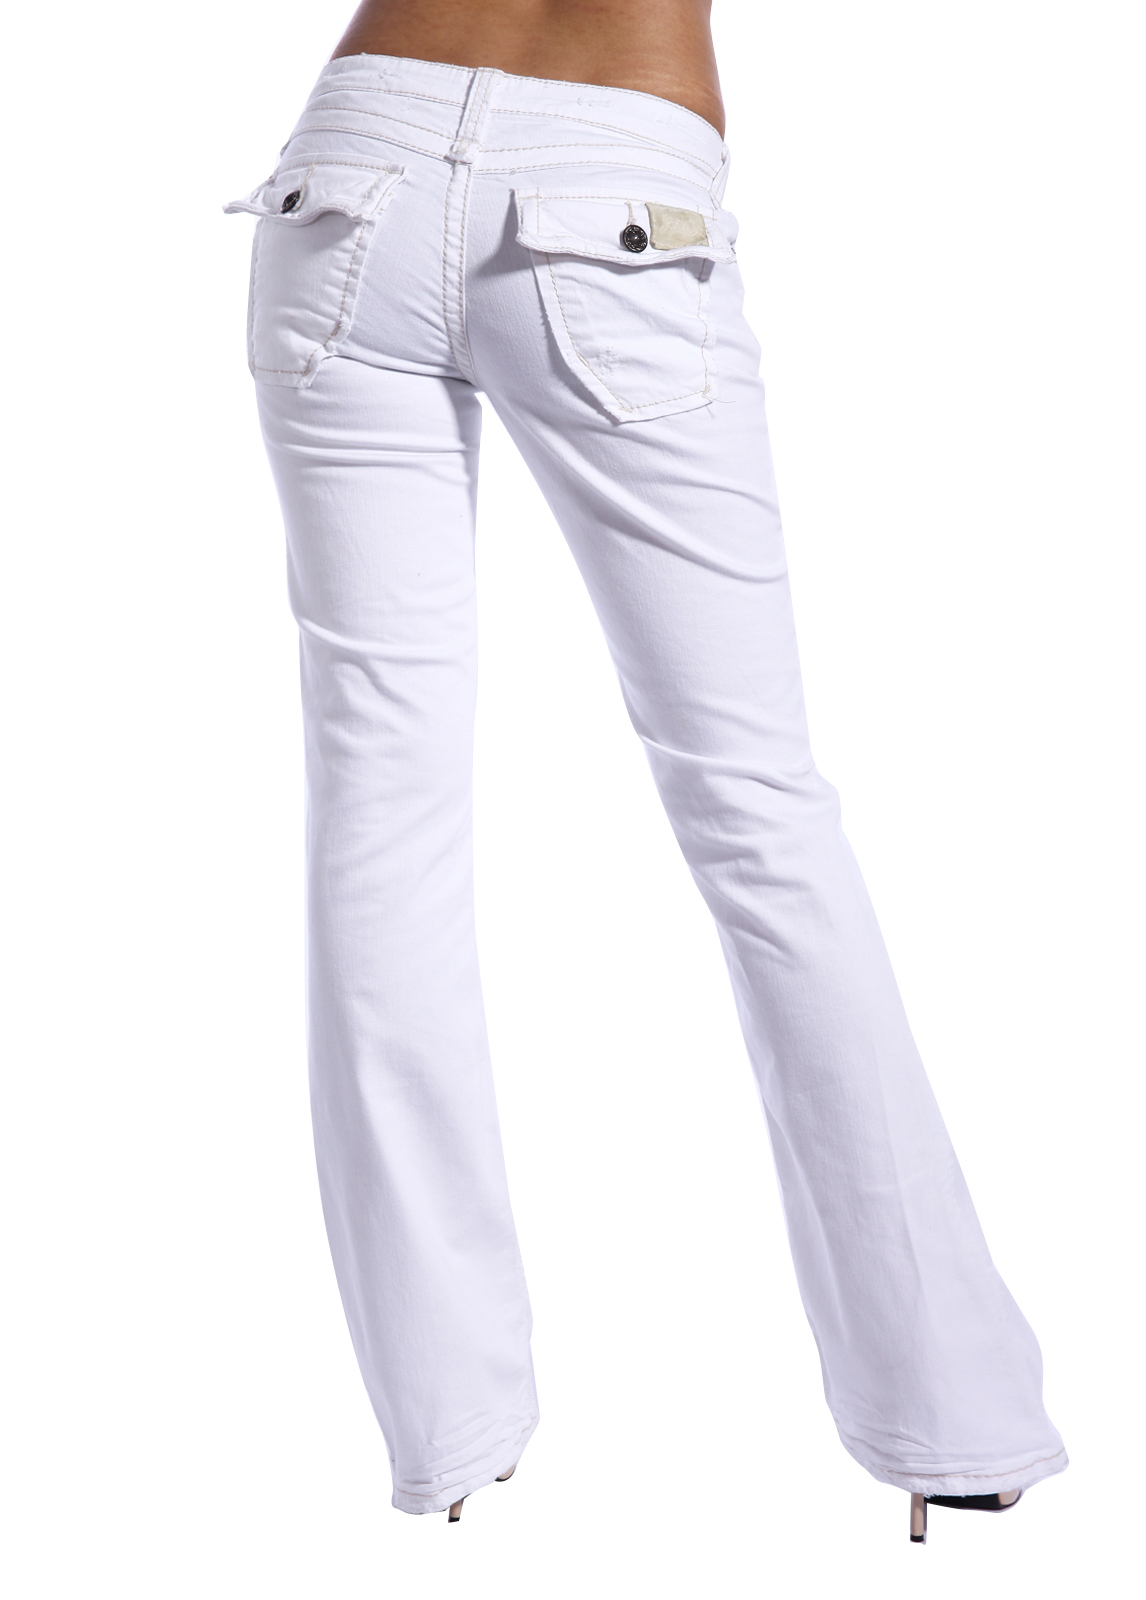 36 Inseam Jeans For Women